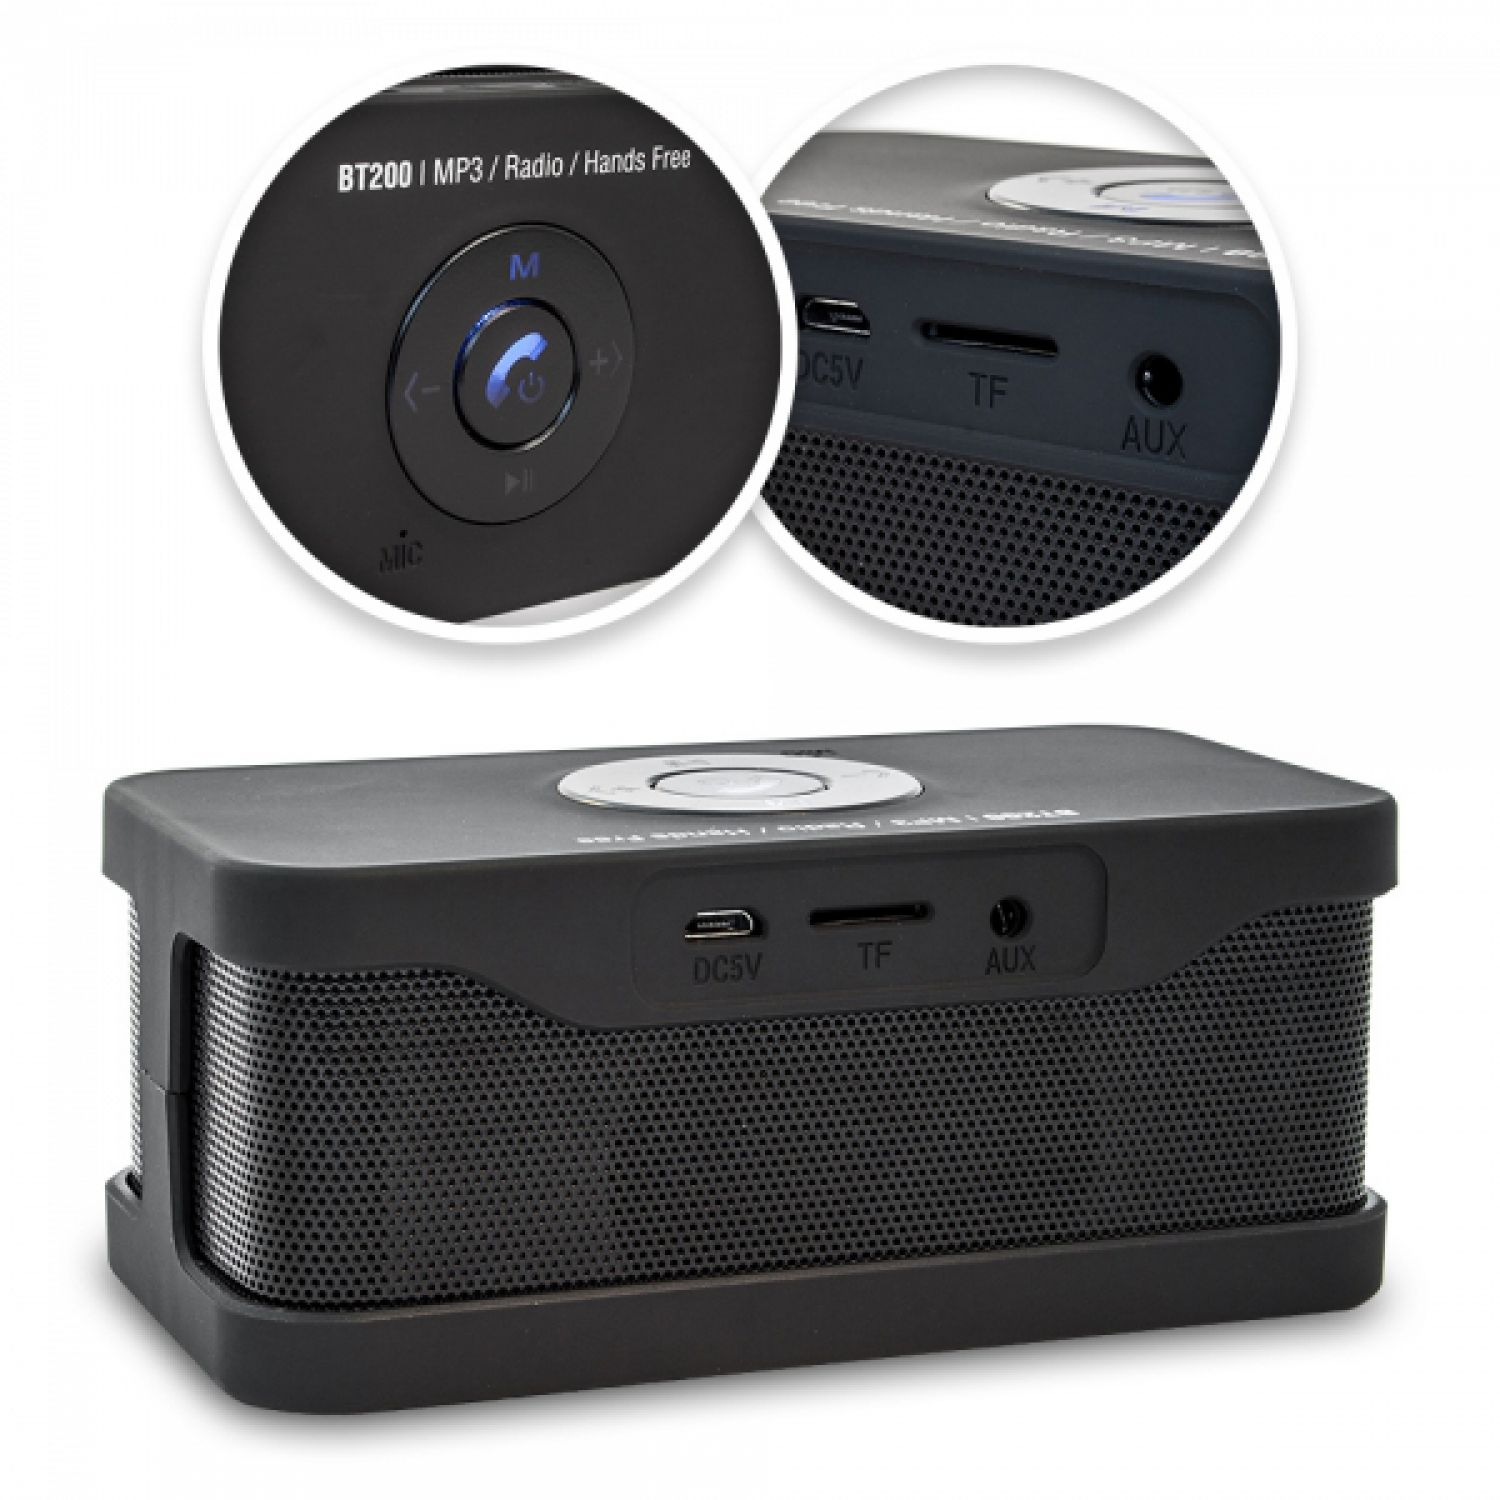 bluetooth speaker lautsprecher tragbar usb micro sd aux radio smartphone blow ebay. Black Bedroom Furniture Sets. Home Design Ideas